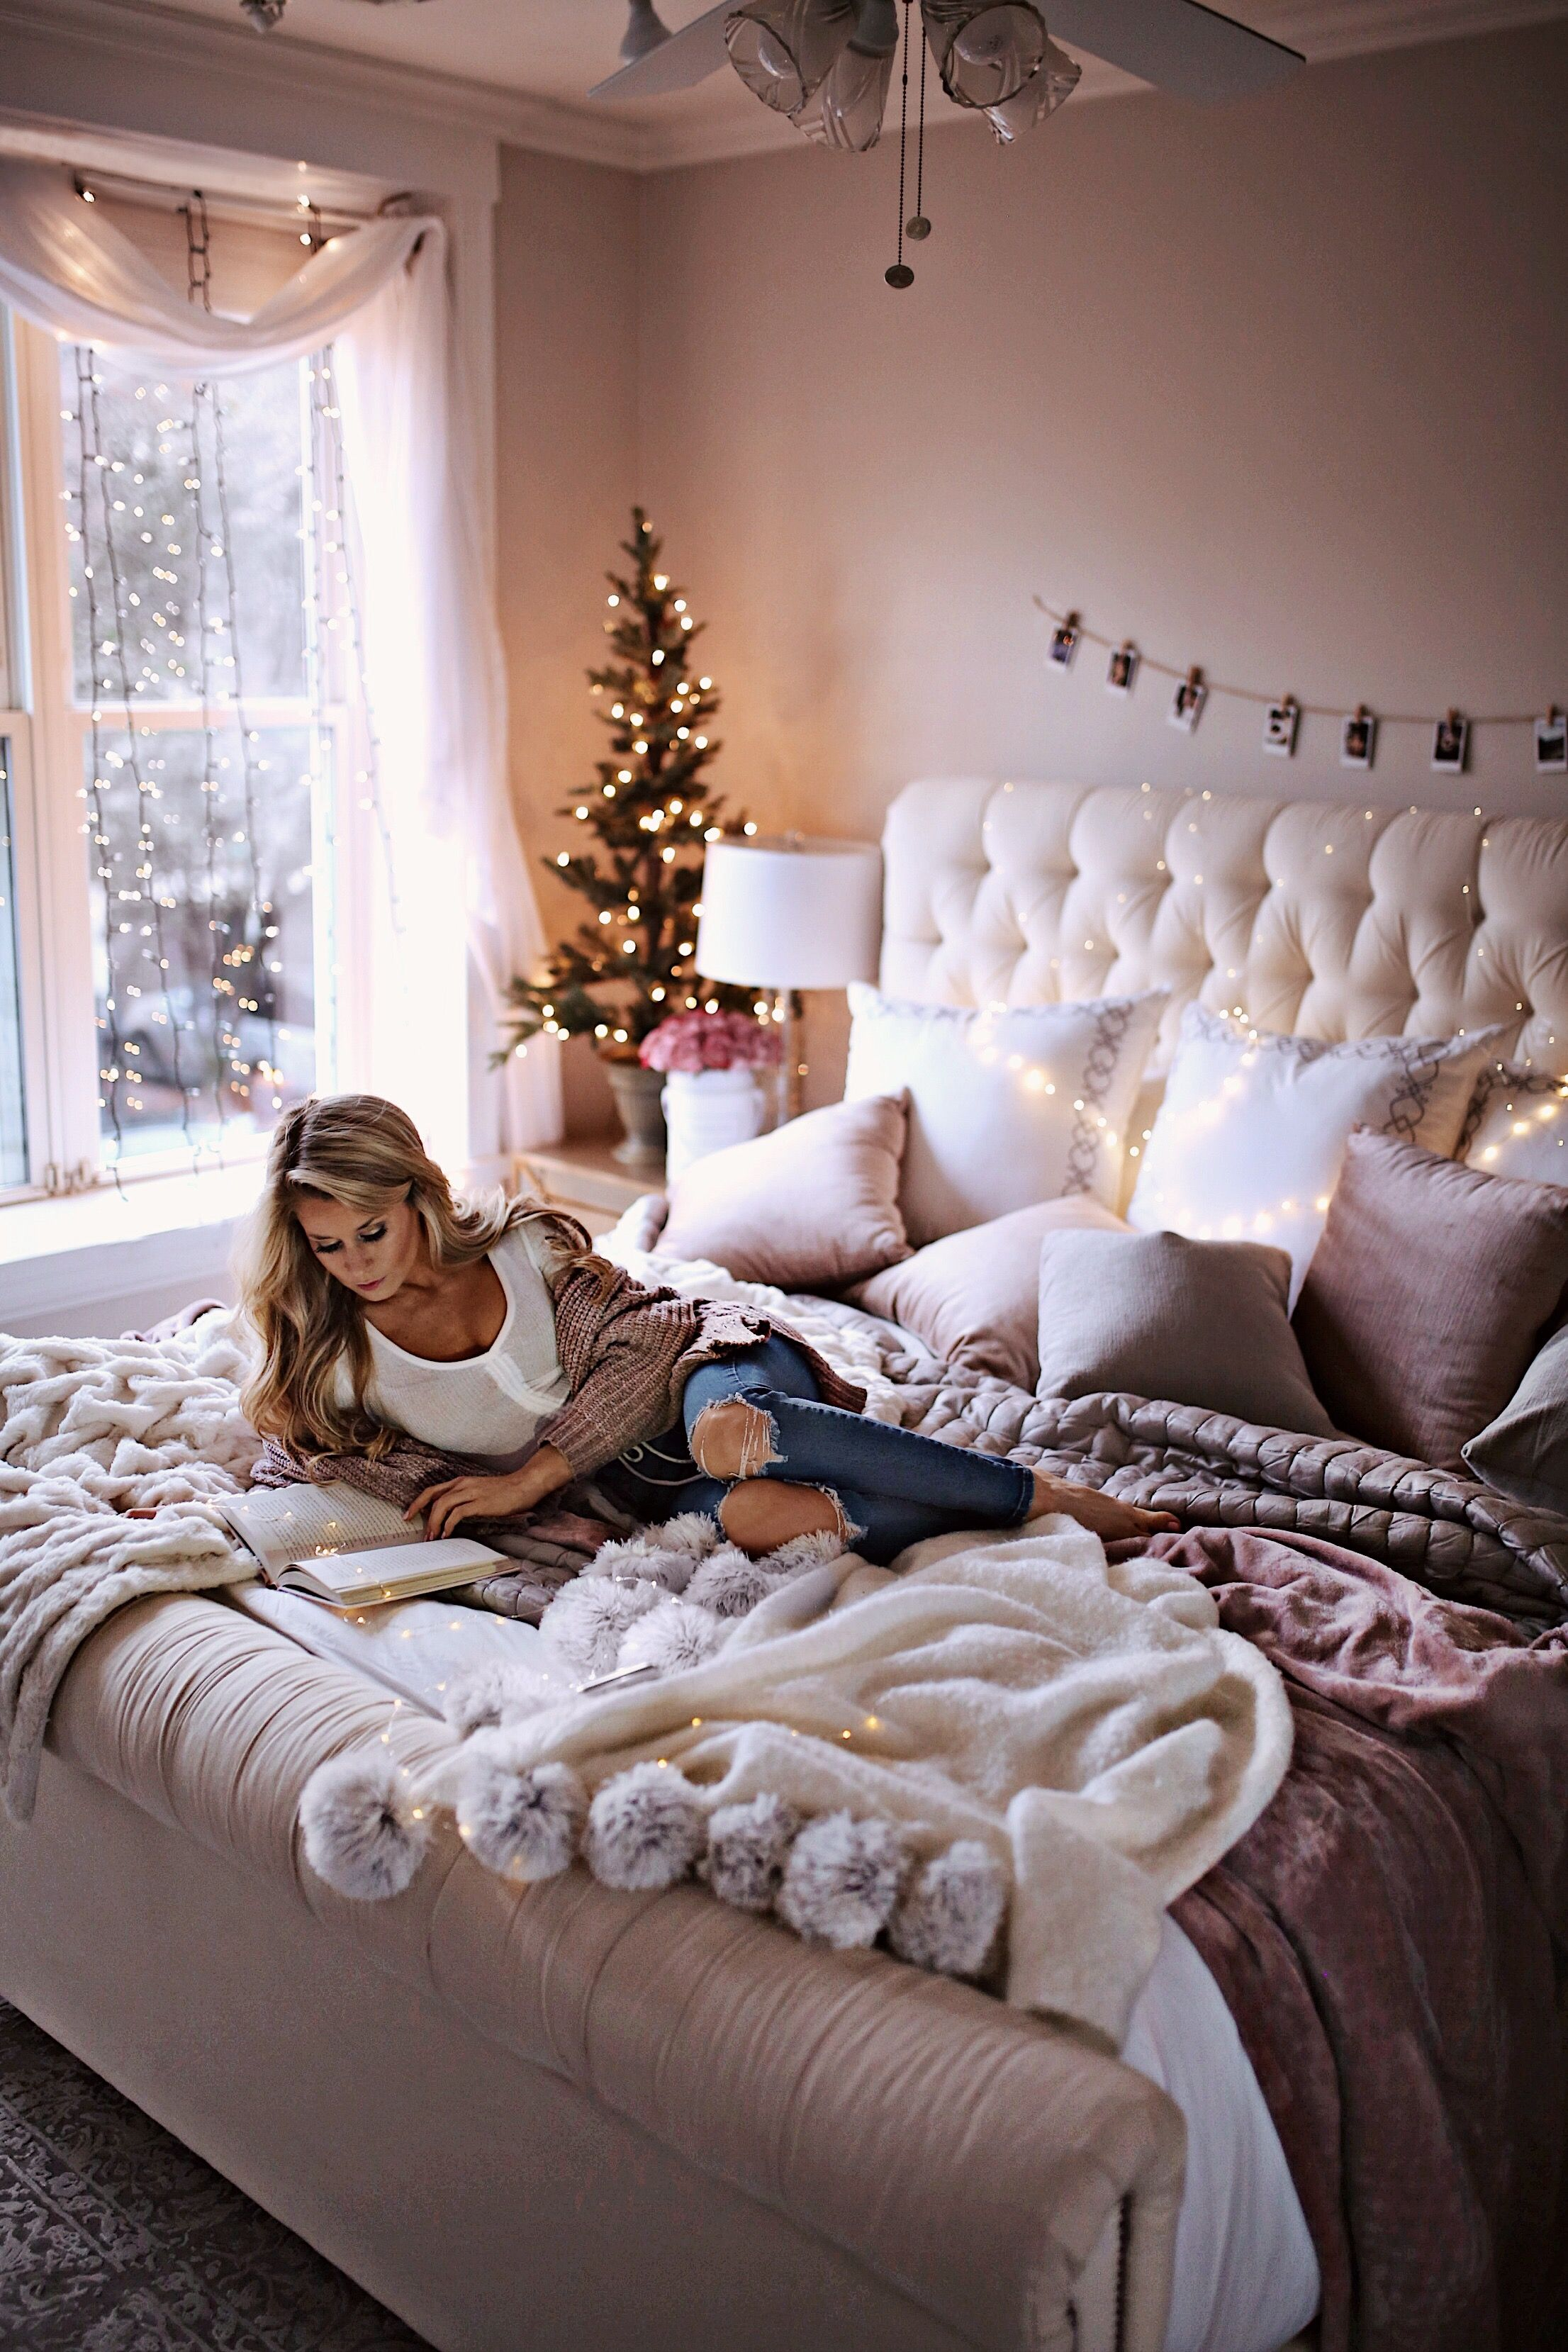 7 Holiday Decor Ideas For Your Bedroom Home Decor